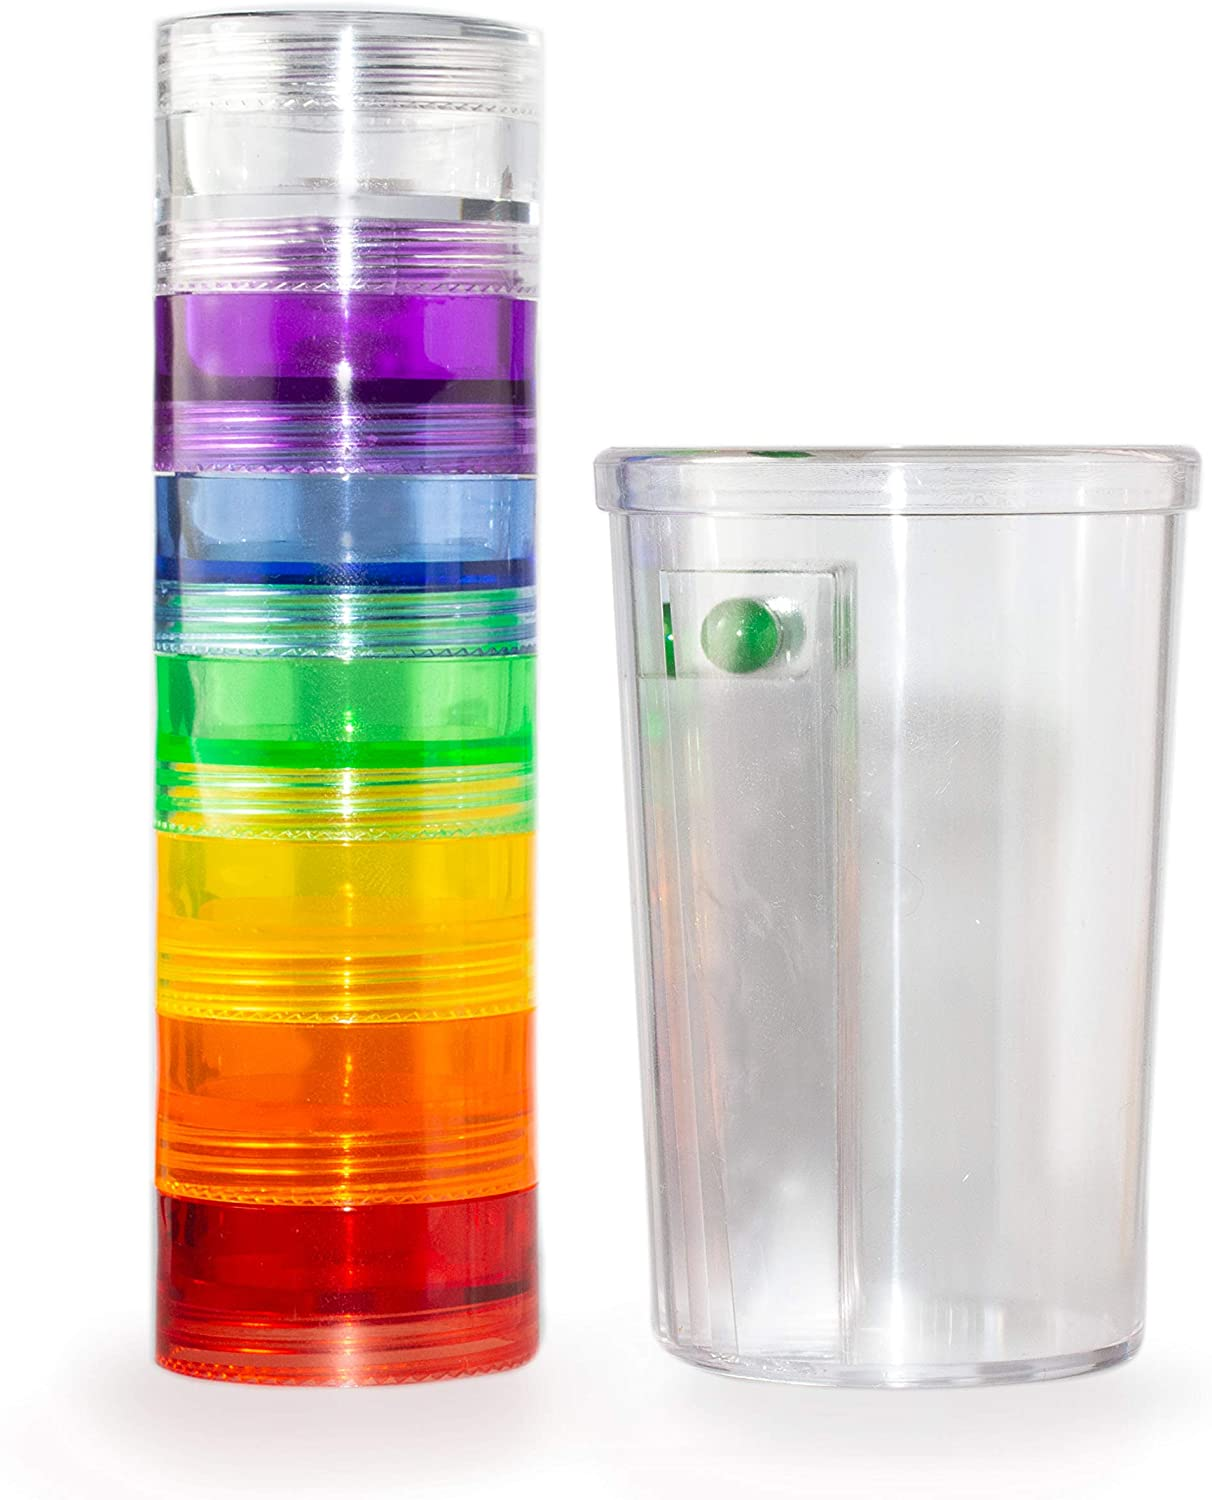 GMS 7 Day Stackable Tritan Plastic Pill Case + GMS Pill Takers Cup - Easily Manage Your Medications, Pills, and Vitamins!